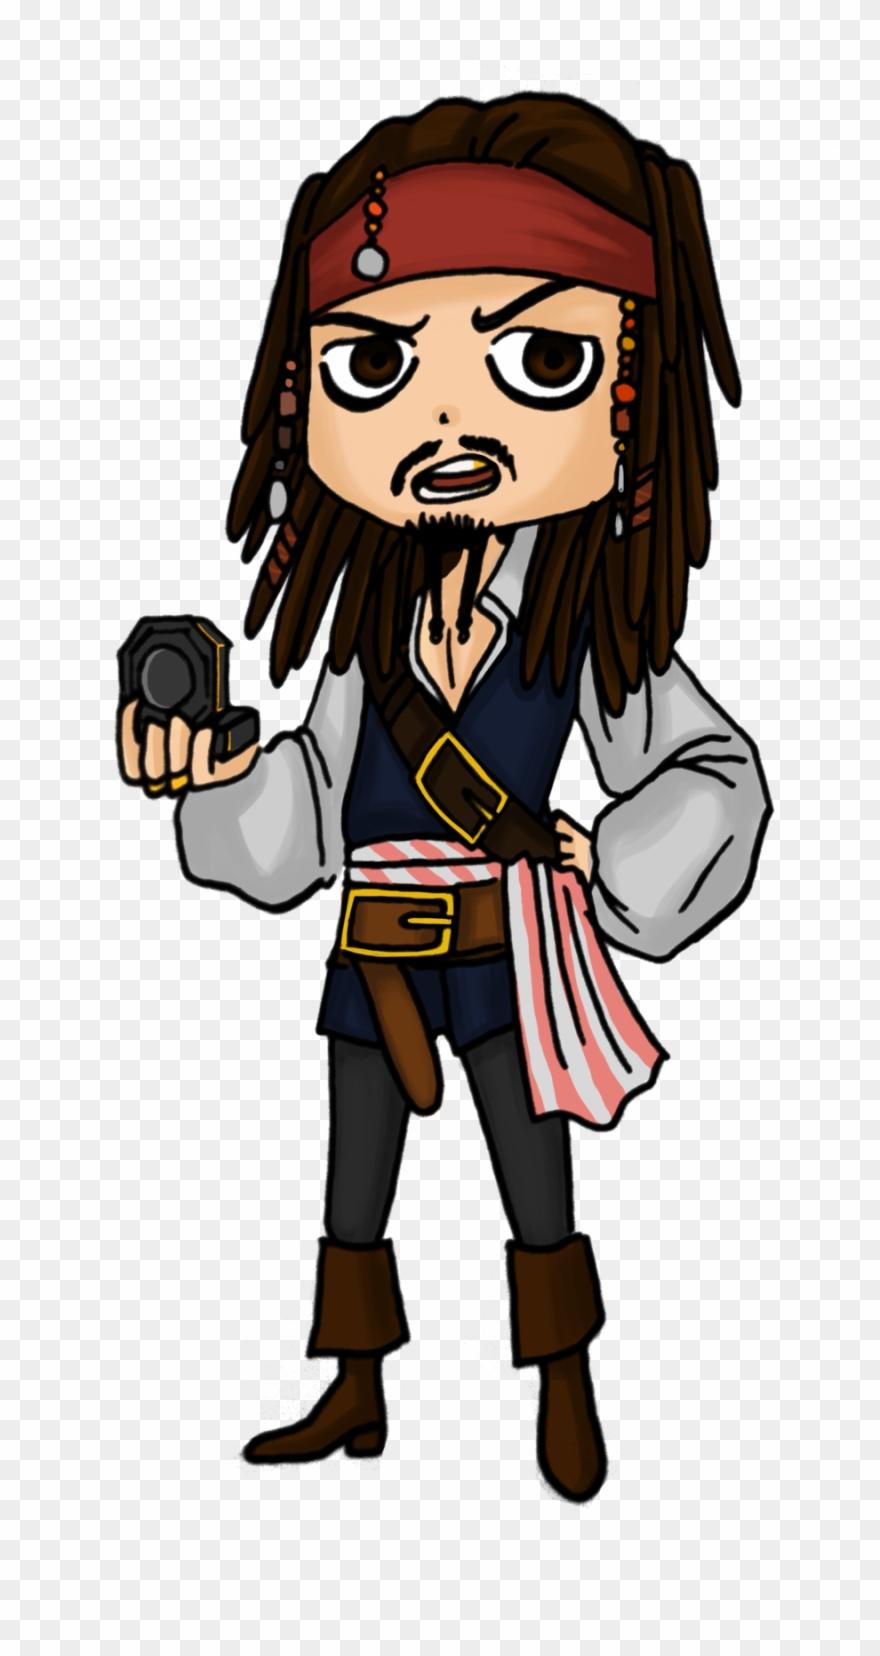 Jack sparrow clipart graphic Commission For Artjou Jack Sparrow Clipart (#1952967 ... graphic